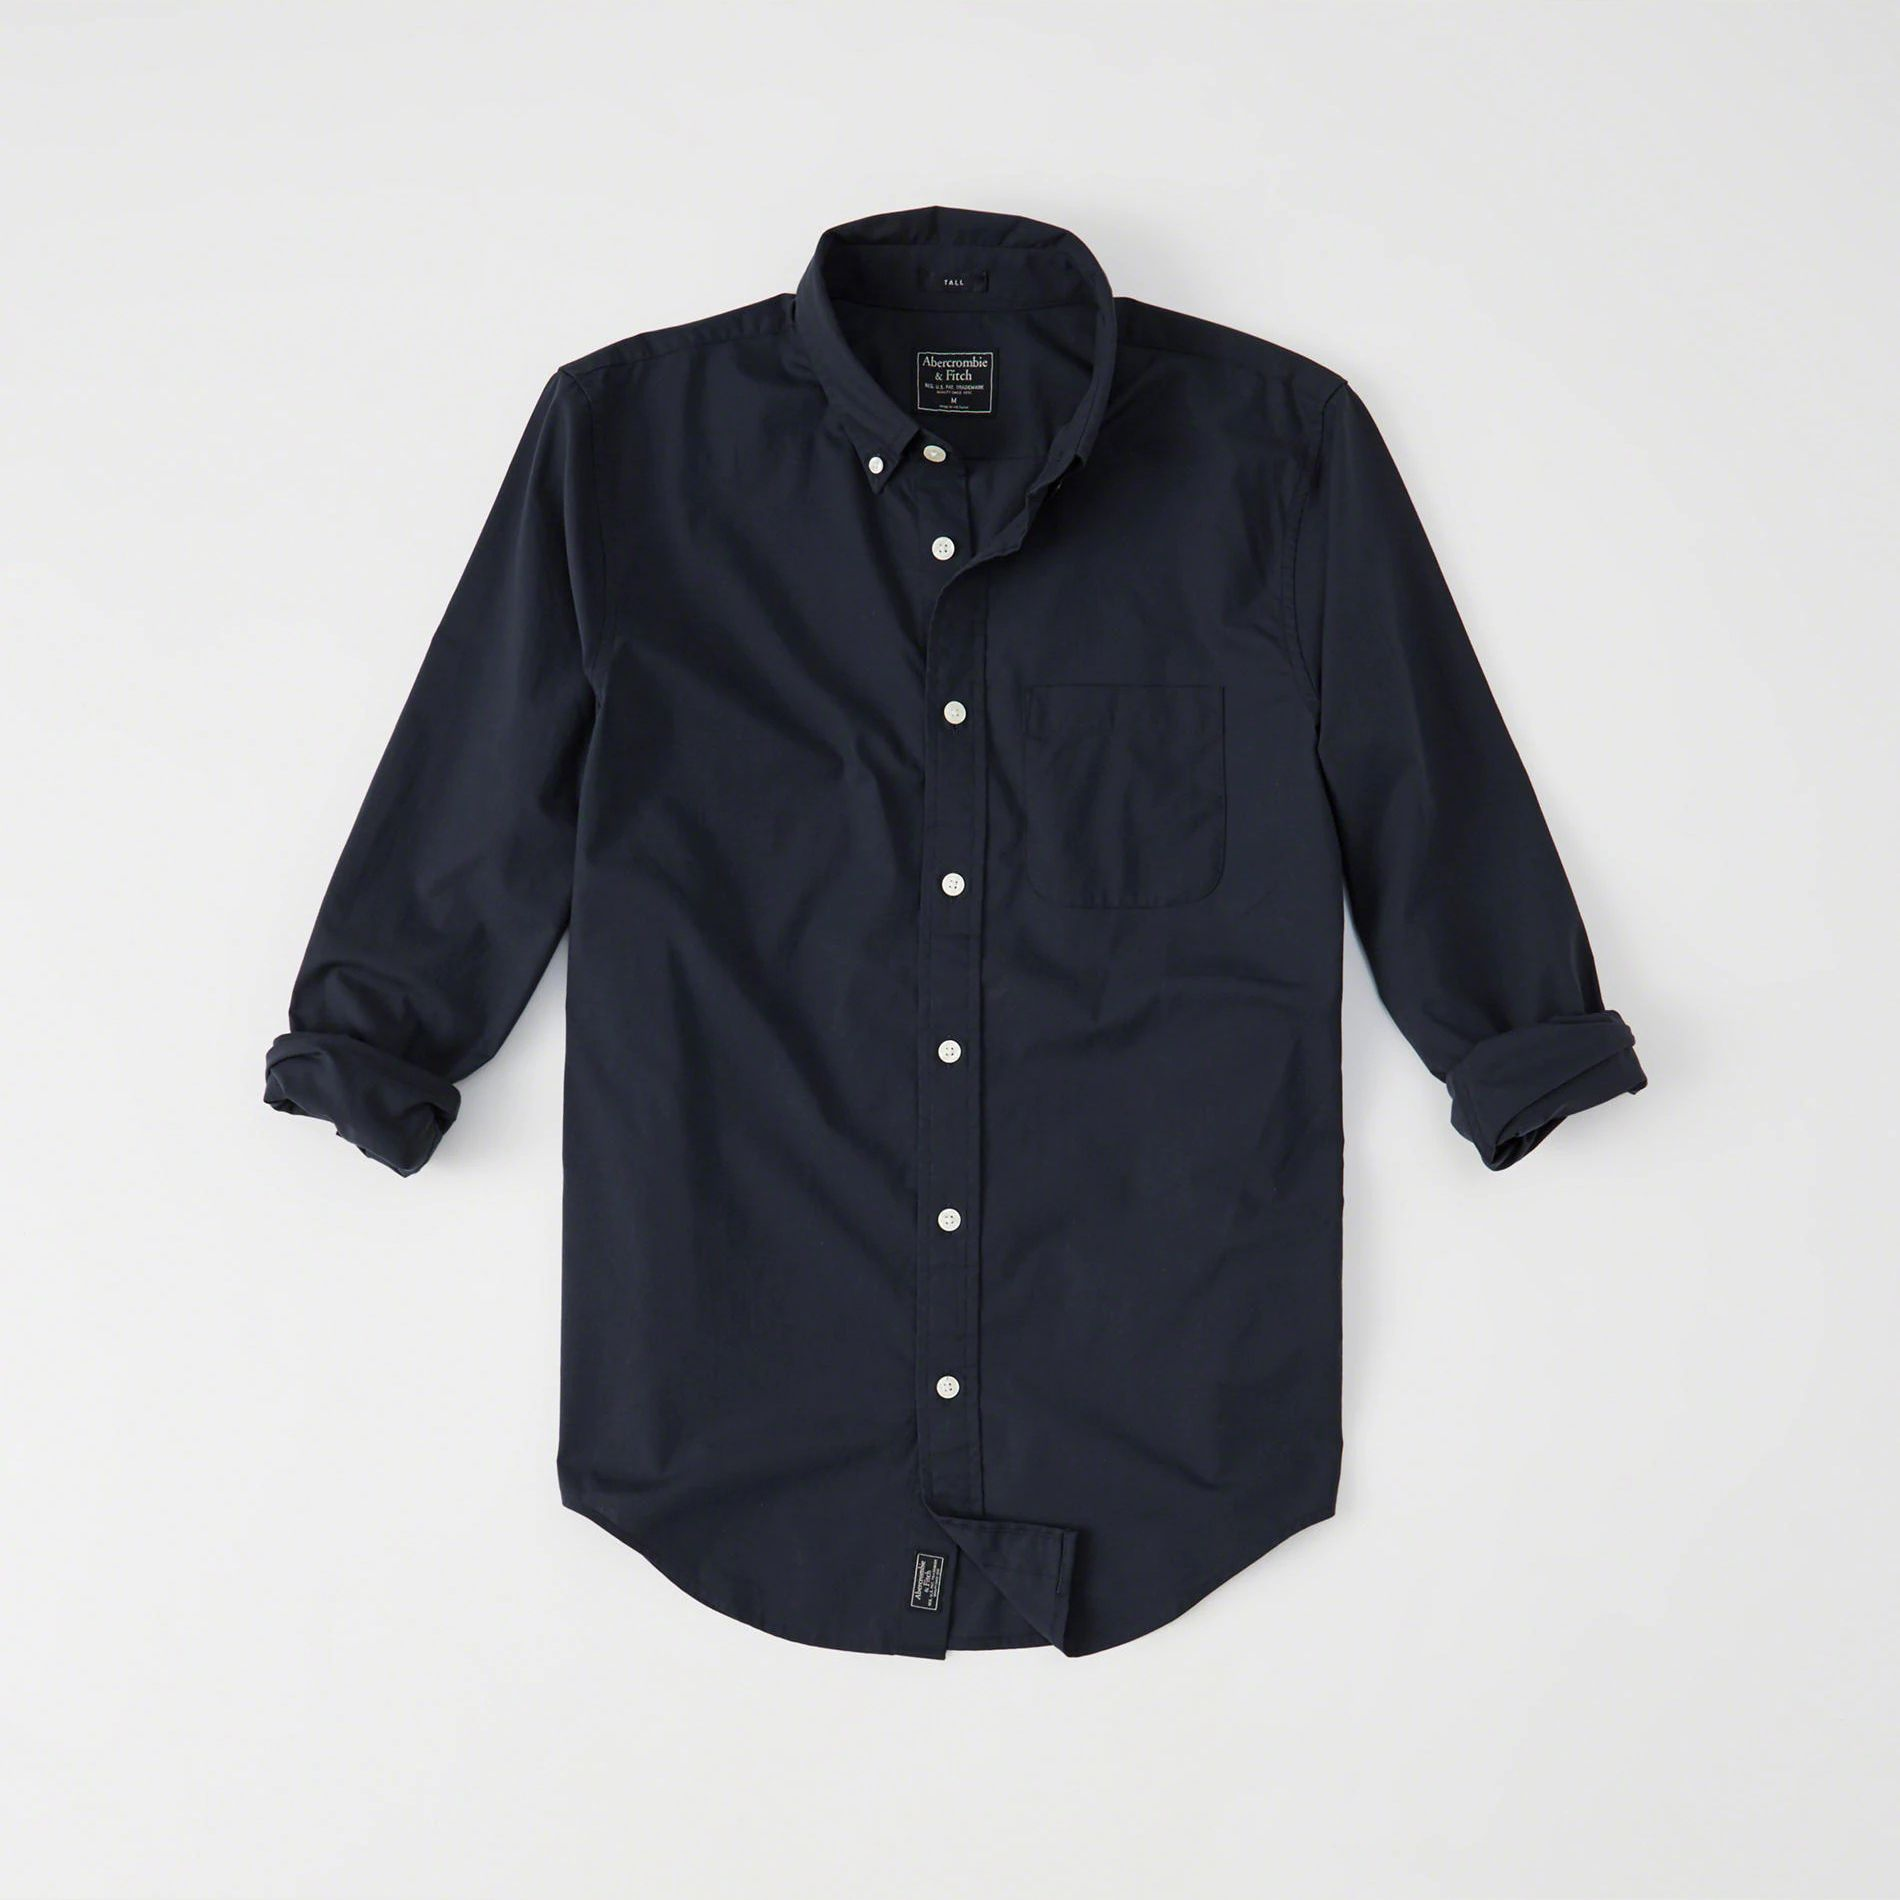 Abercrombie & Fitch Signature Fit Oxford Shirt